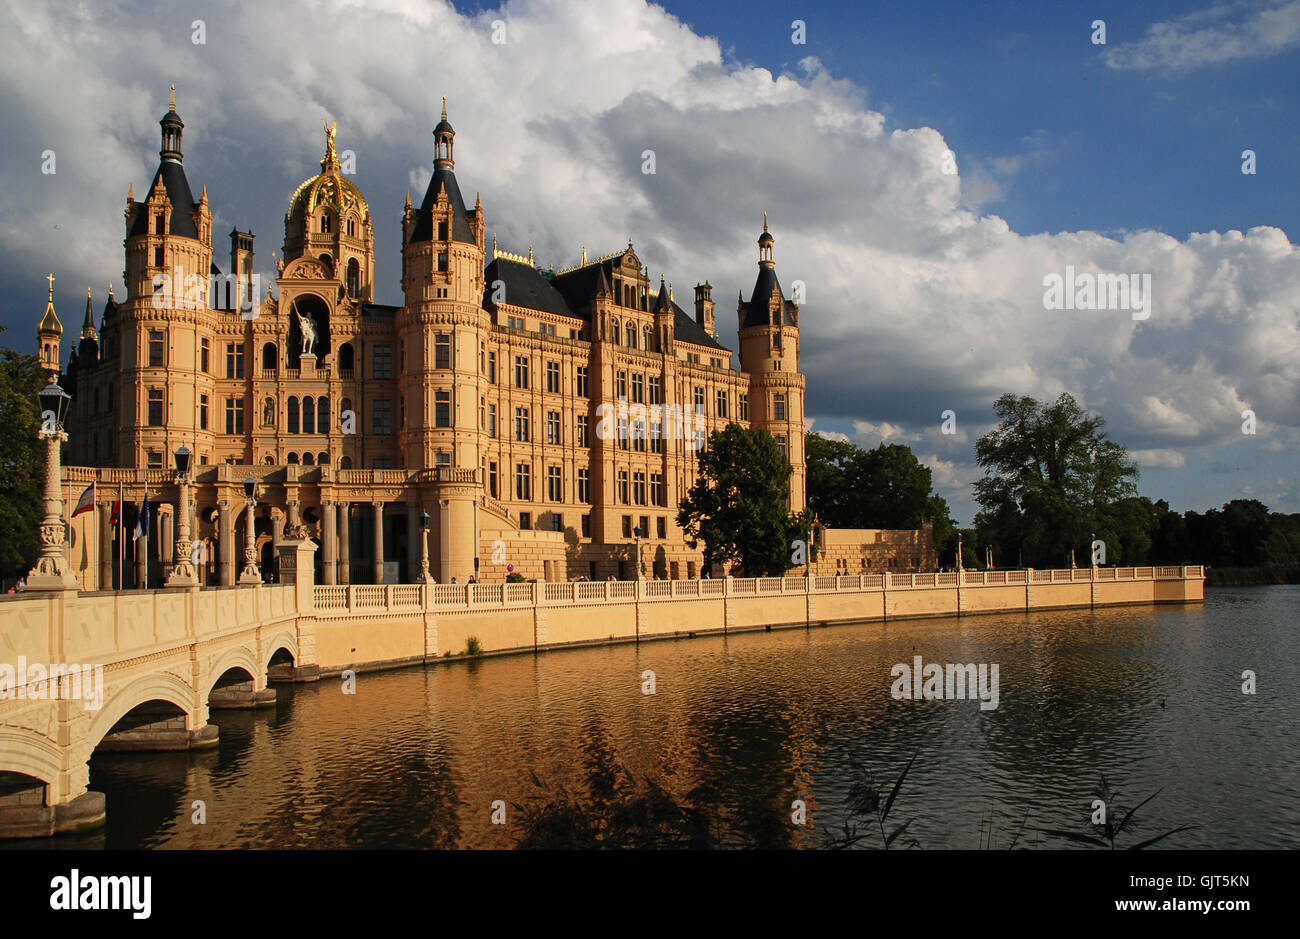 story building chateau - Stock Image